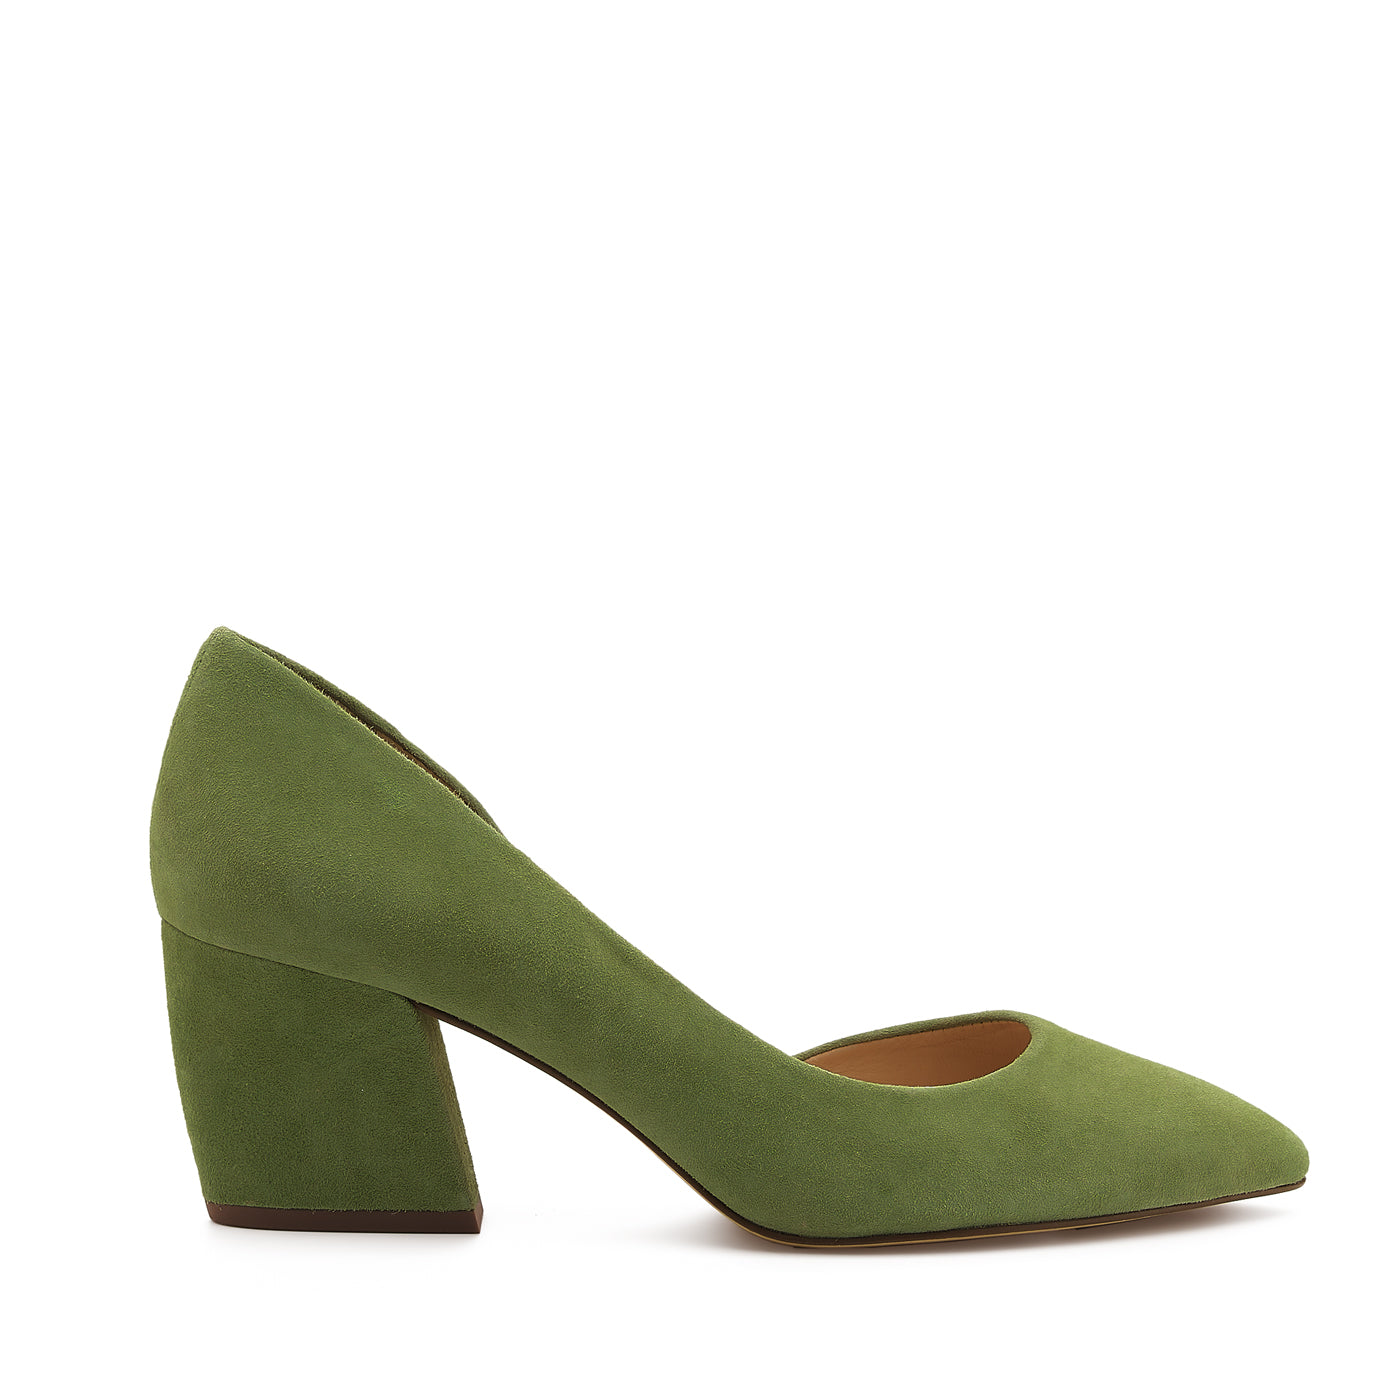 botkier sena d'orsay low heel almond toe pump in matcha green